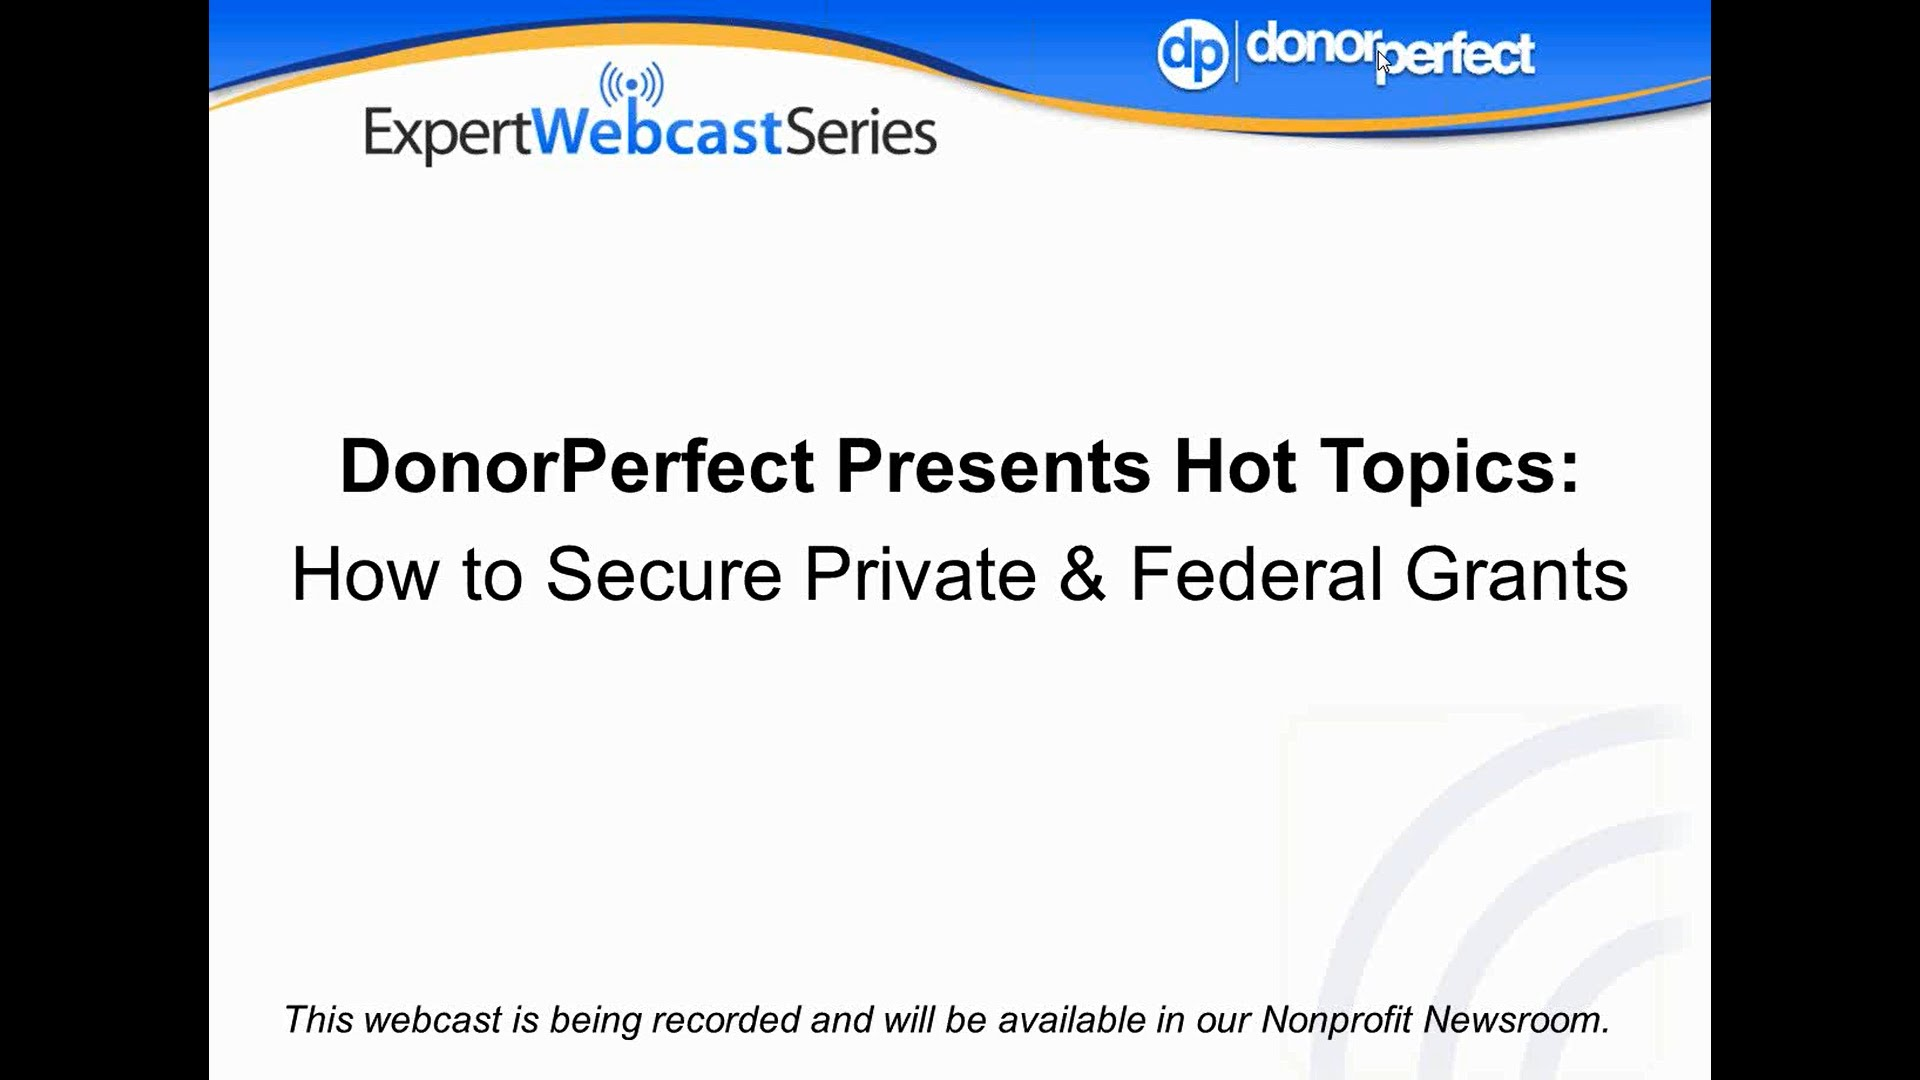 How to Get Private & Federal Grants for Nonprofits - Fundraising Tips & Expert Webinar